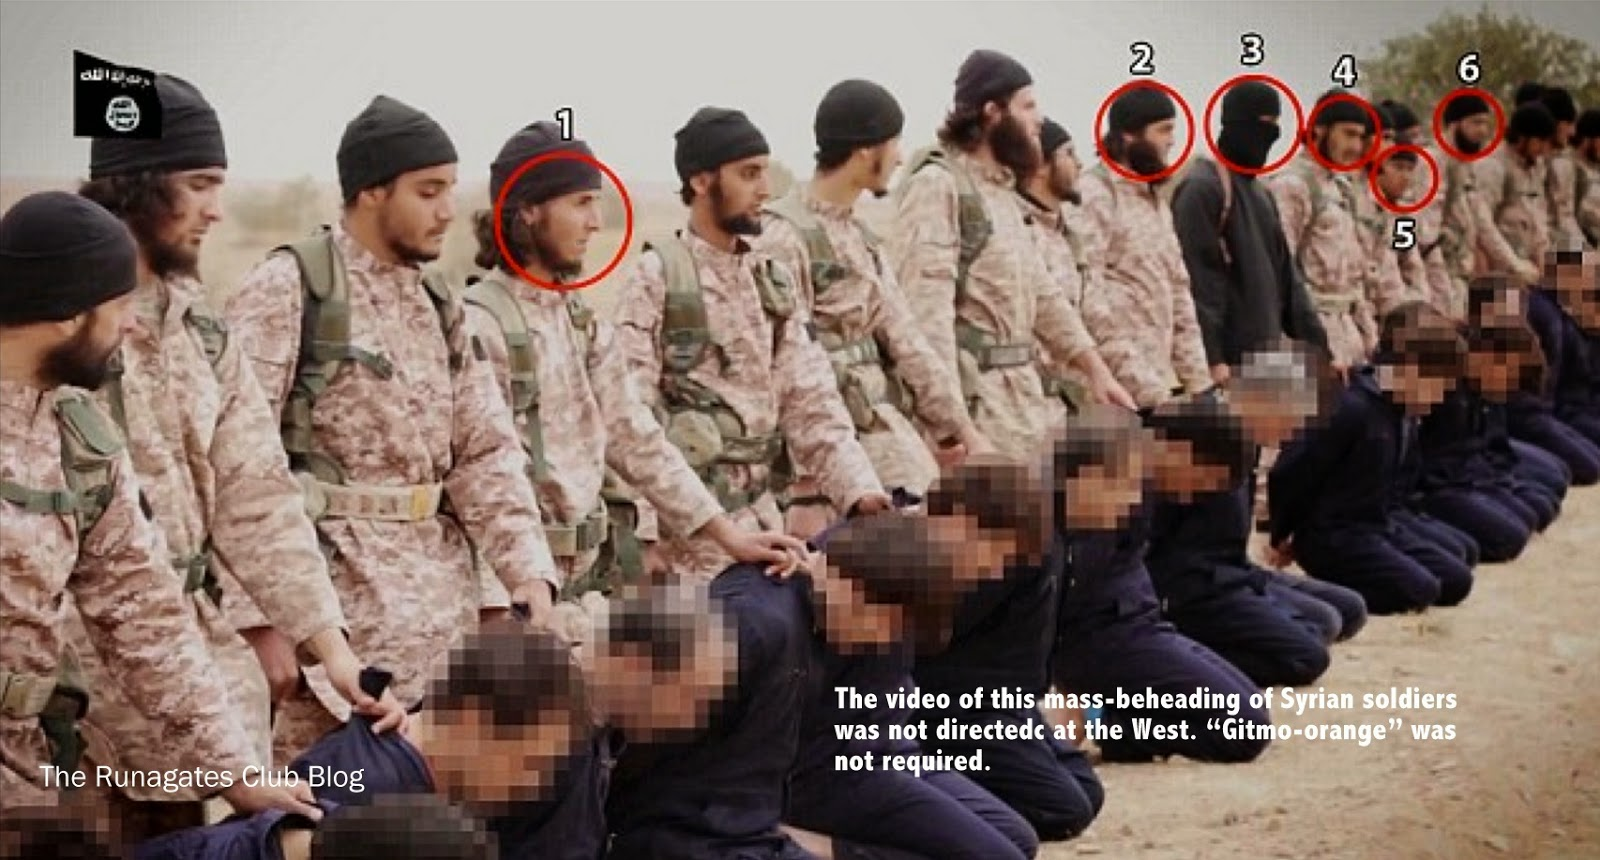 Mass beheadings of Syrian Soldiers by ISIS